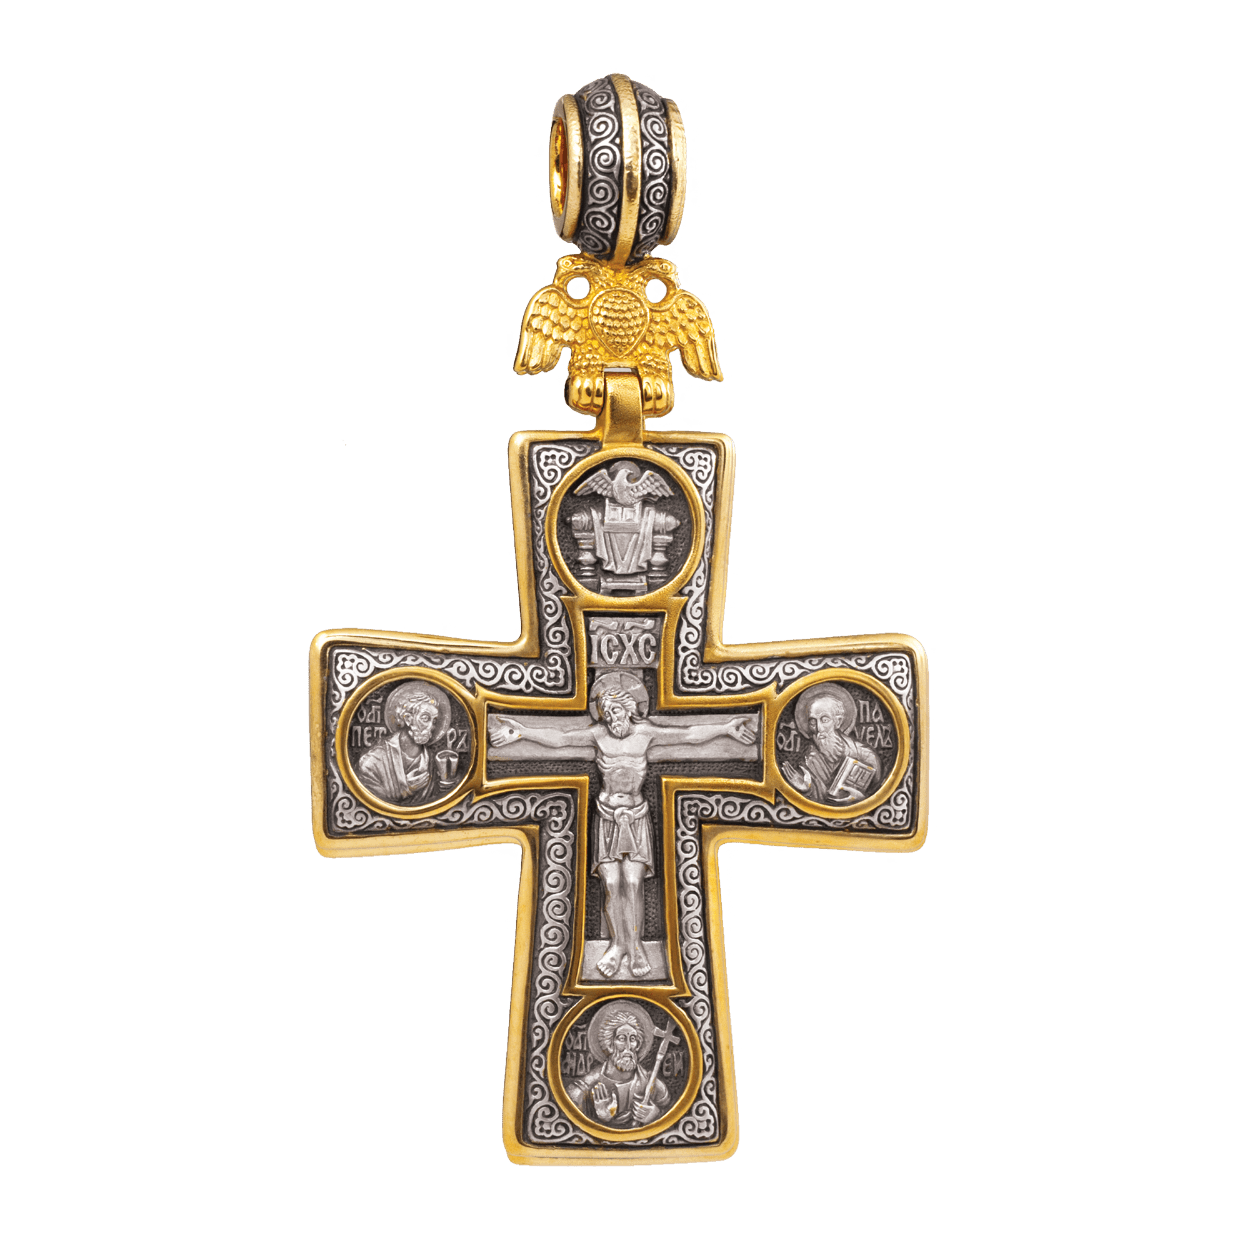 Russian-Orthodox-silver-Cross-pendant-CROSS-OF-SAINT-PETERSBURG-Master-Jeweler-Fedorov